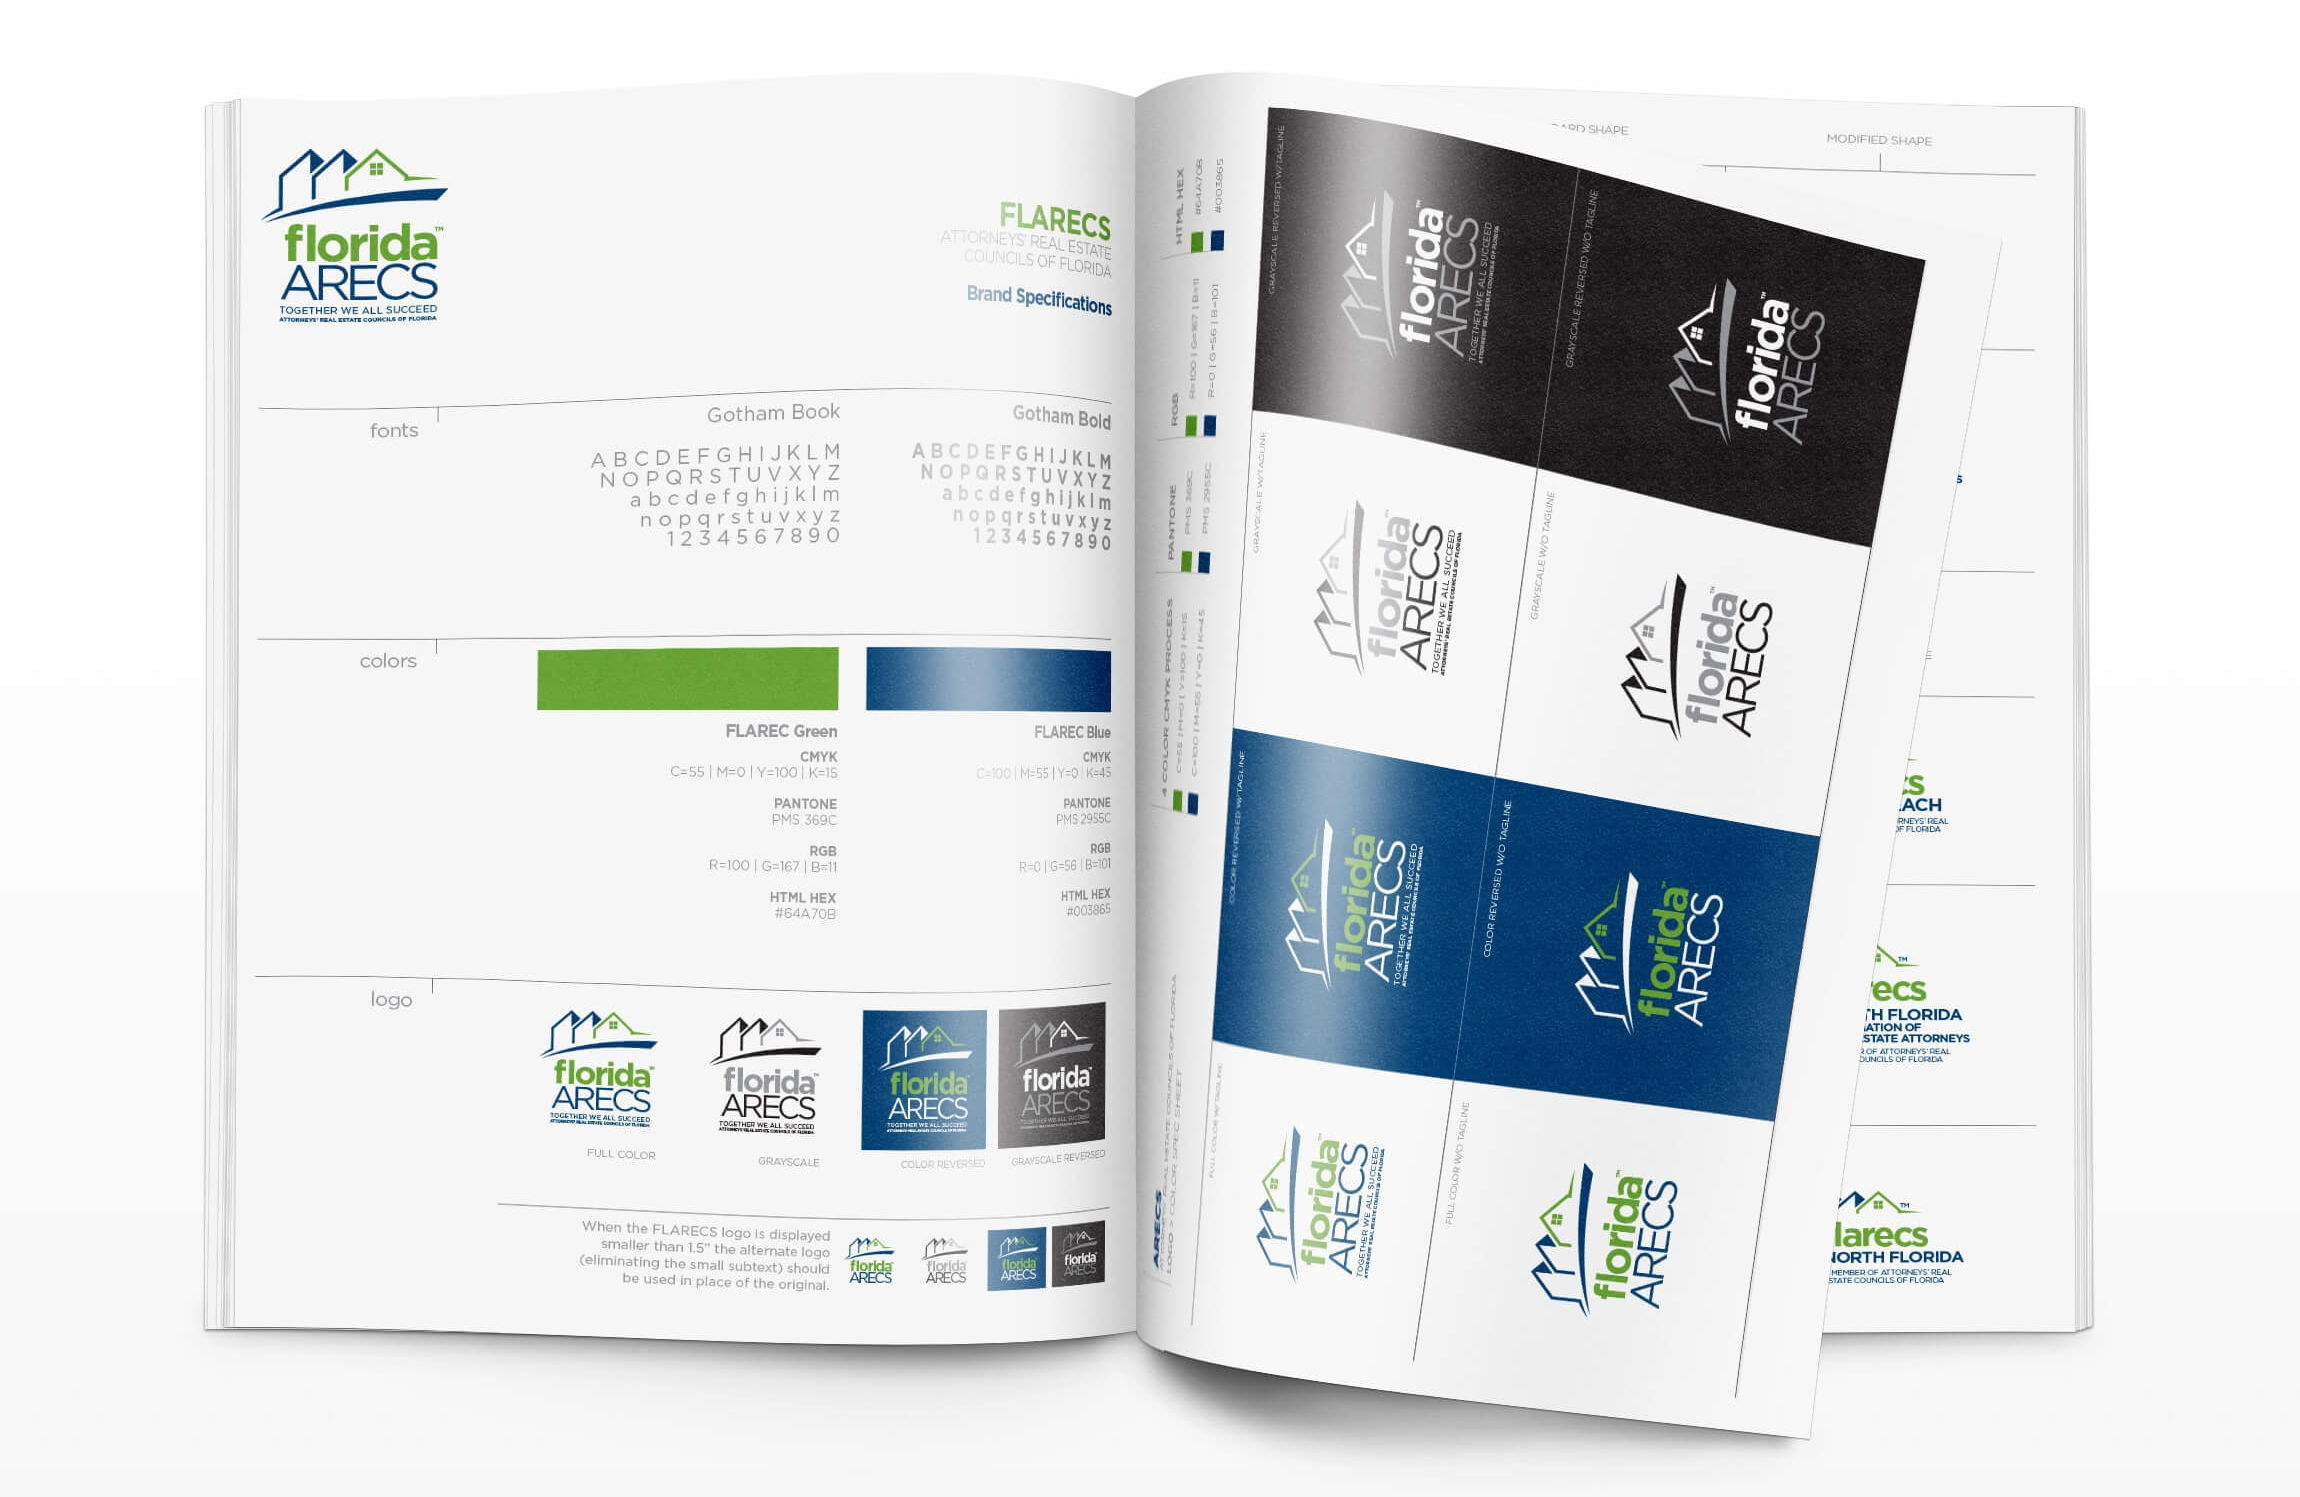 Brand Guidelines and Information